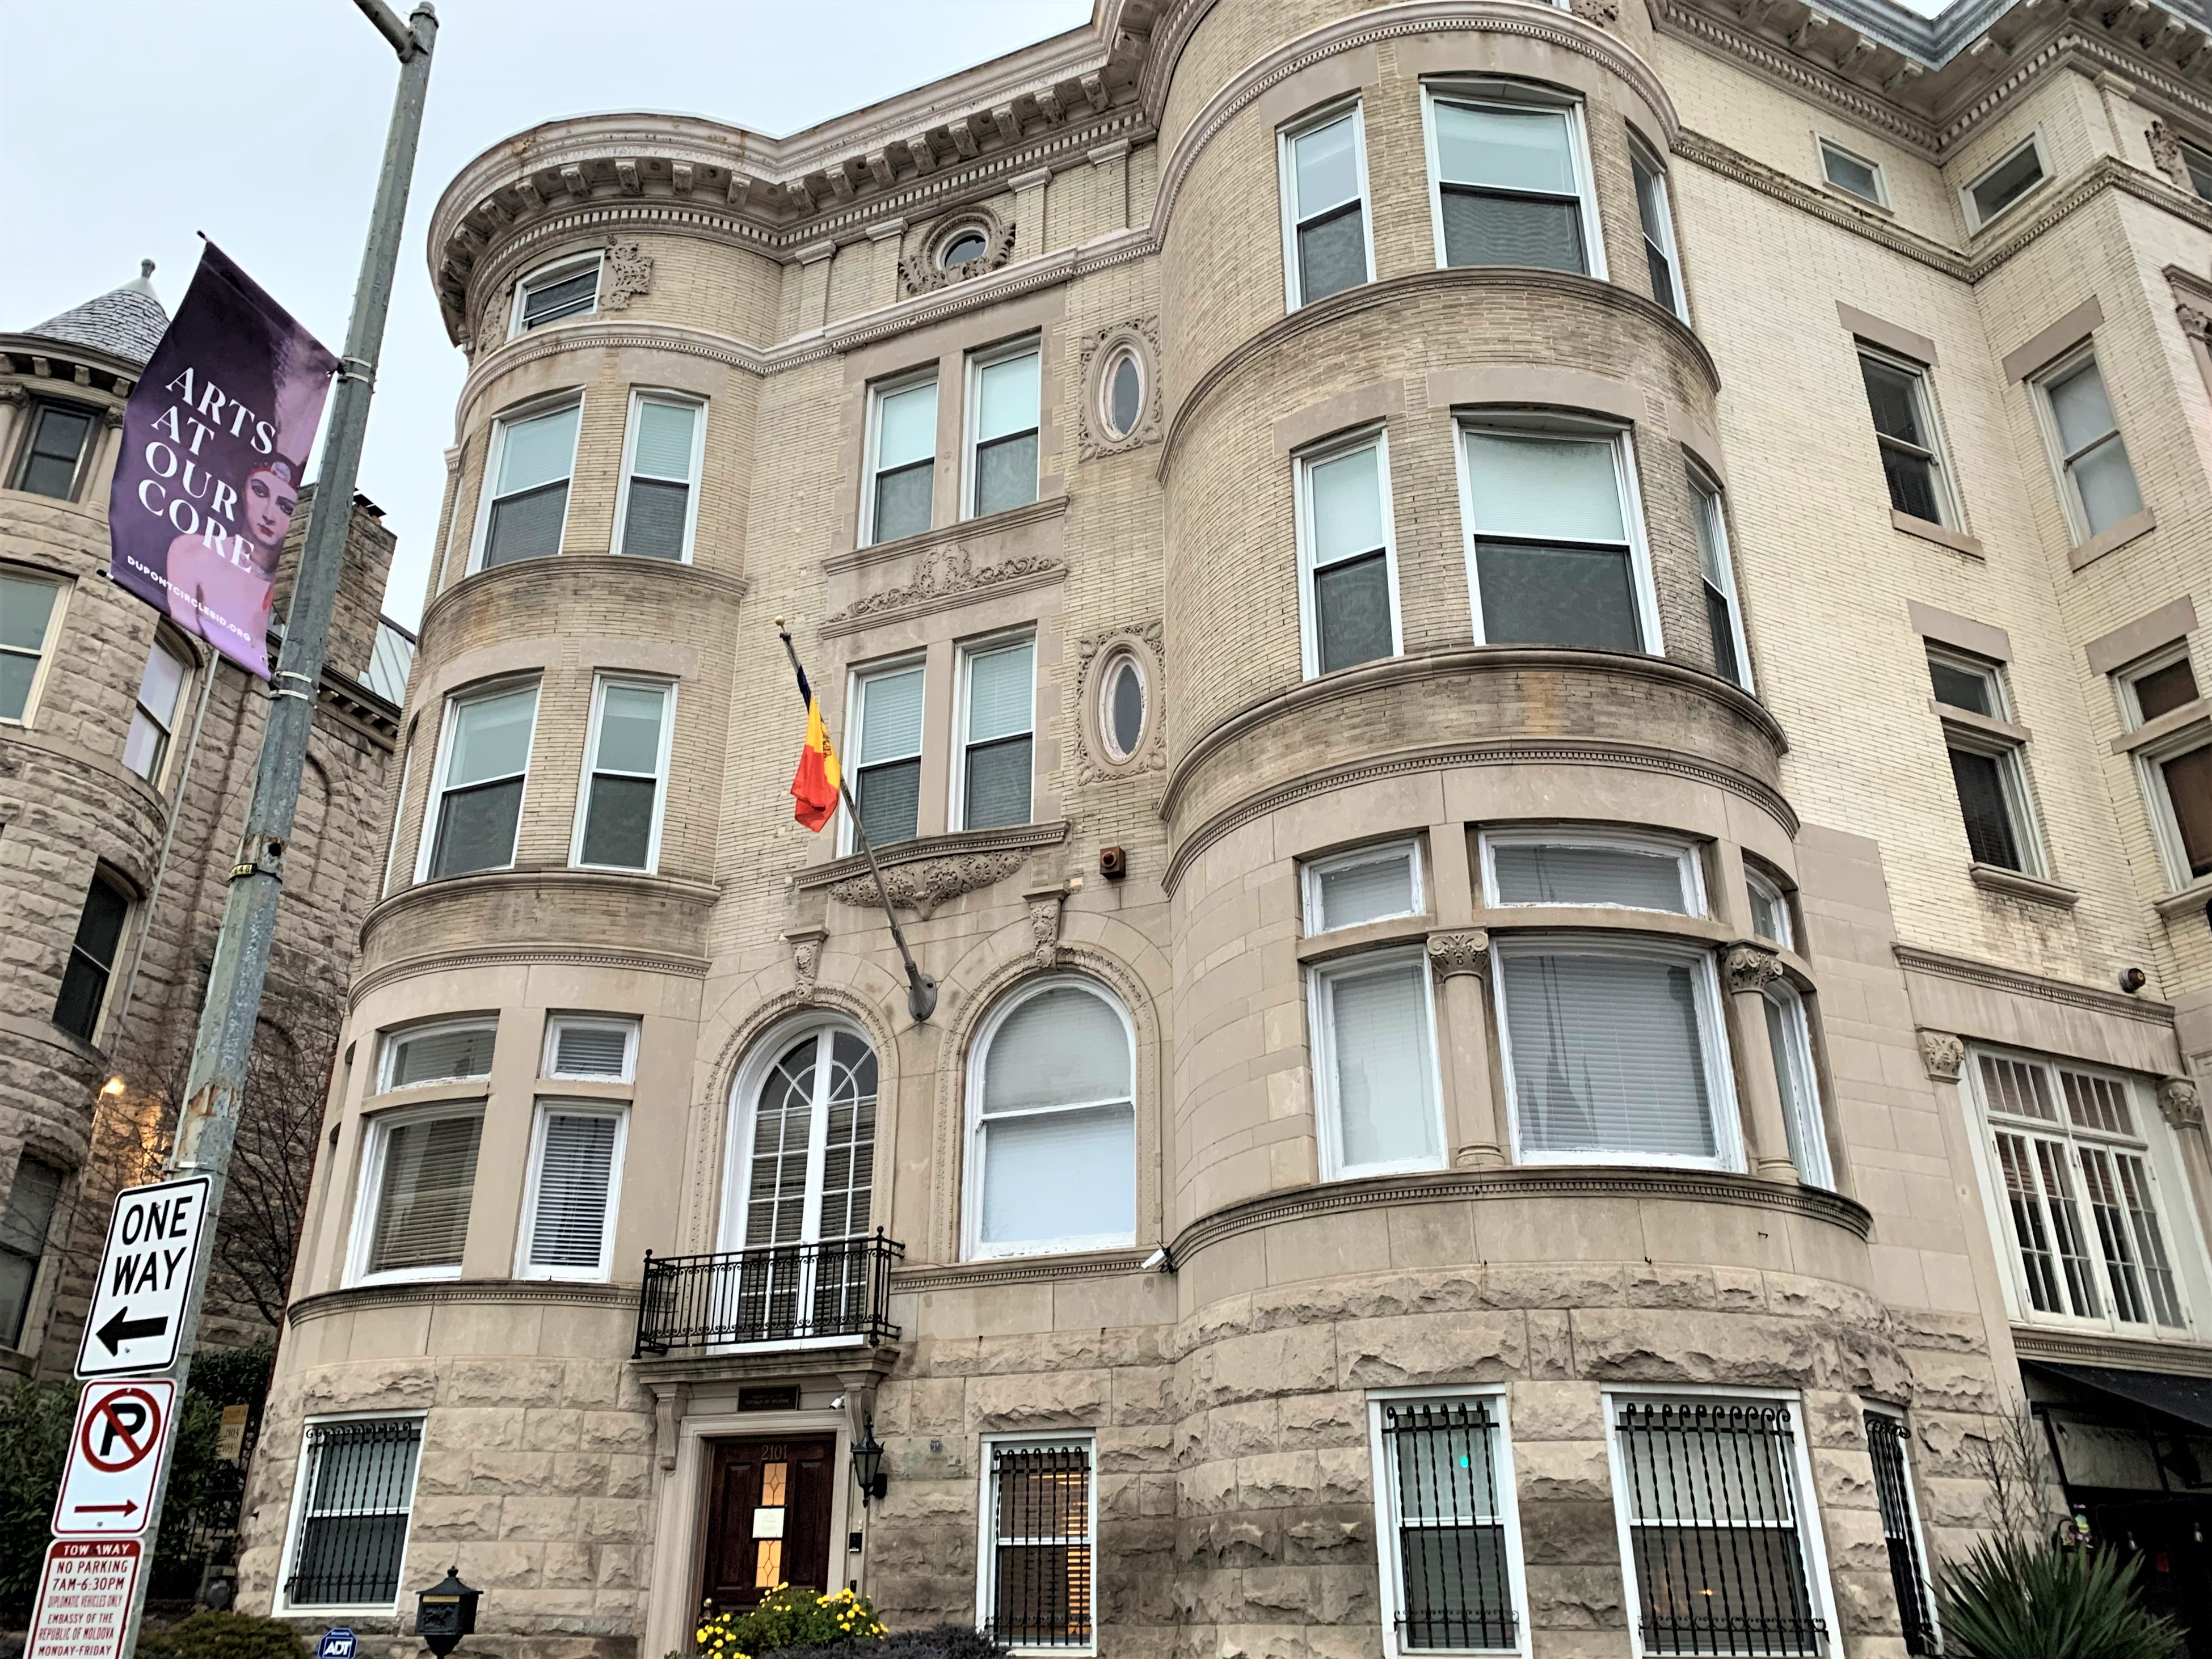 Real Estate & Homes For Sale Near The Embassy of Moldova in Washington, DC. Artyom Shmatko Luxury Real Estate Agent